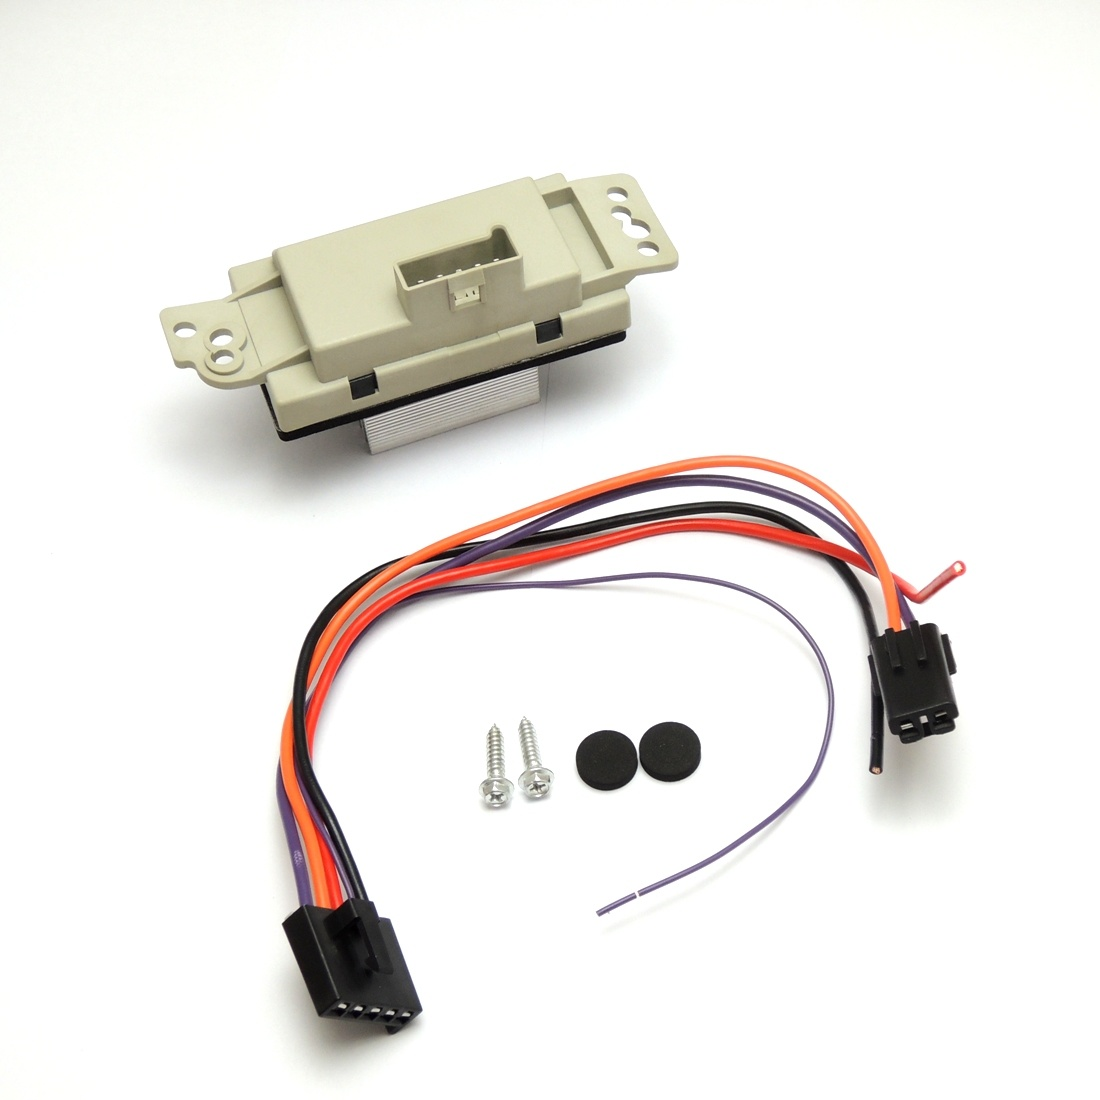 China Ibmrgm014 Auto Parts Accessory Car Blower Motor Resistor For The And Wiring To Components Gm 19260762